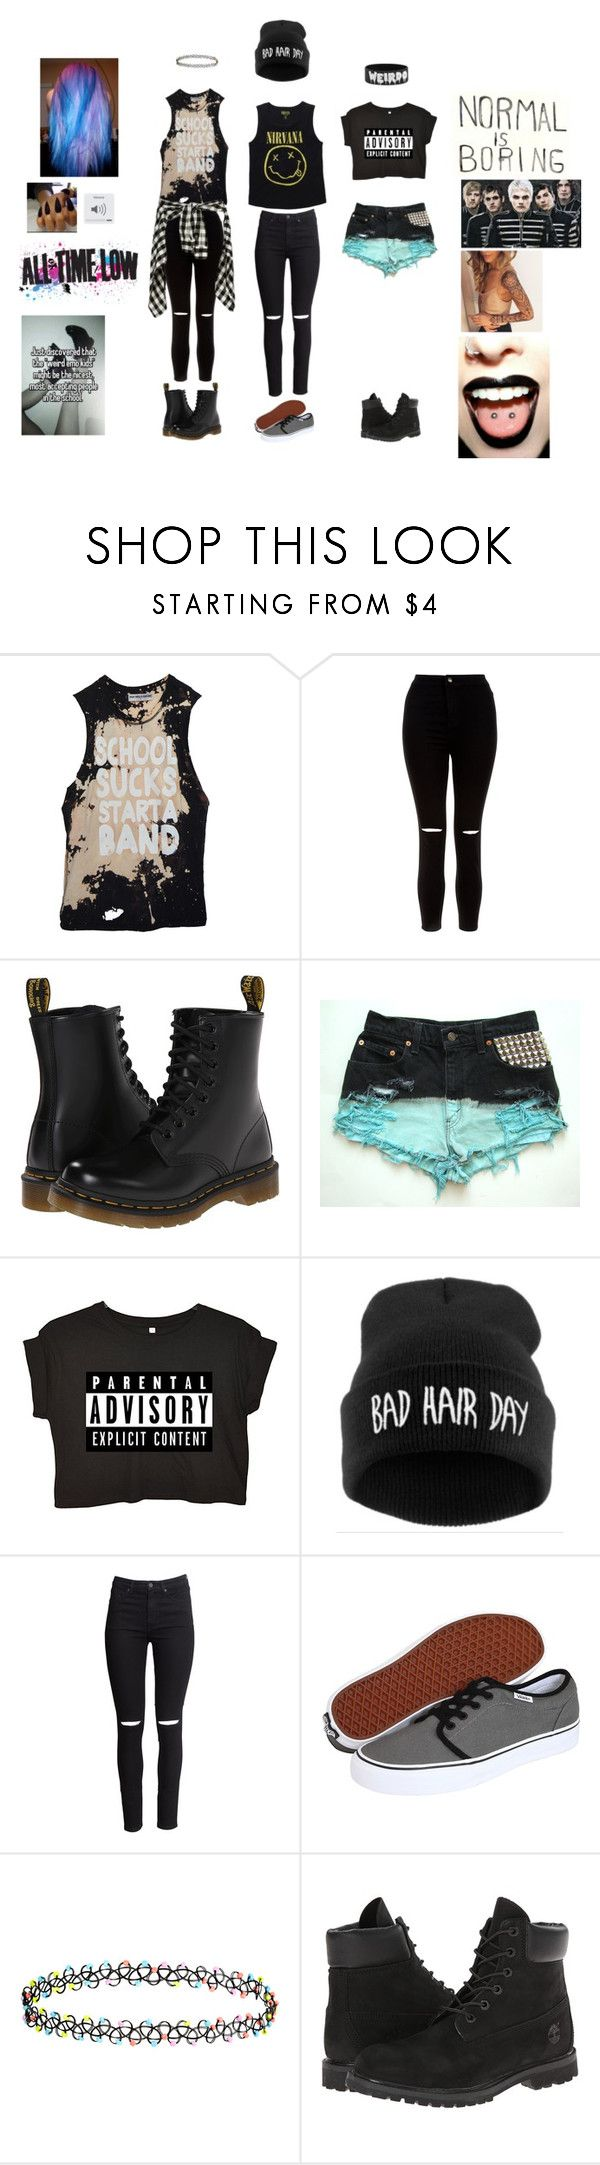 """reminding me"" by mollyjoanis ❤ liked on Polyvore featuring High Heels Suicide, New Look, Dr. Martens, H&M, Vans, Accessorize, Timberland and Hot Topic"